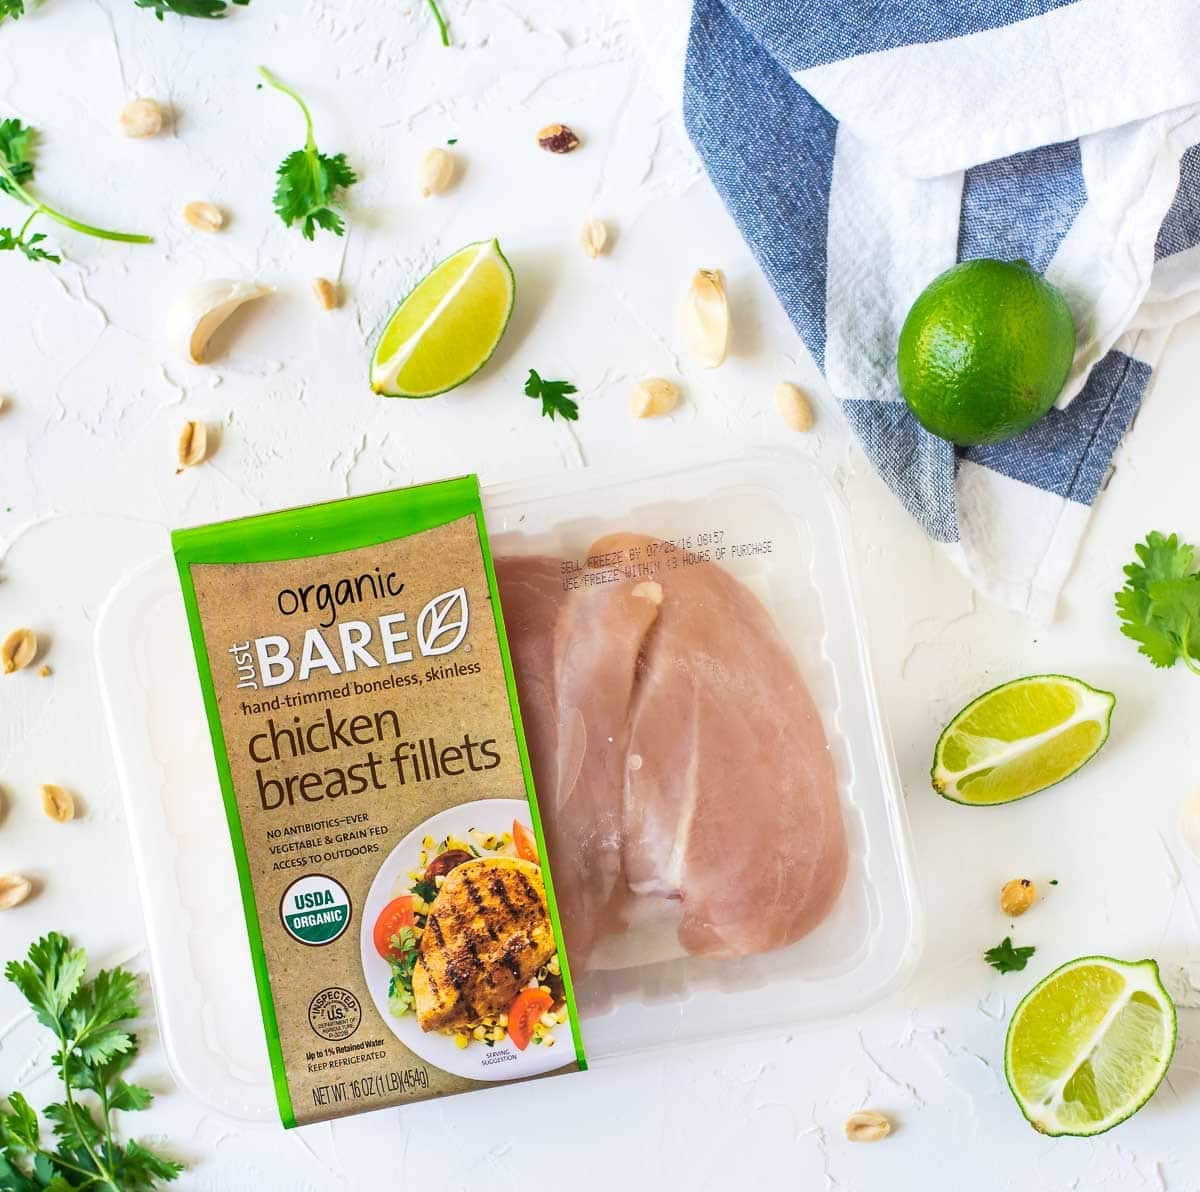 package of organic chicken breast fillets from Bare Organics surrounded by fresh lime wedges and peanuts